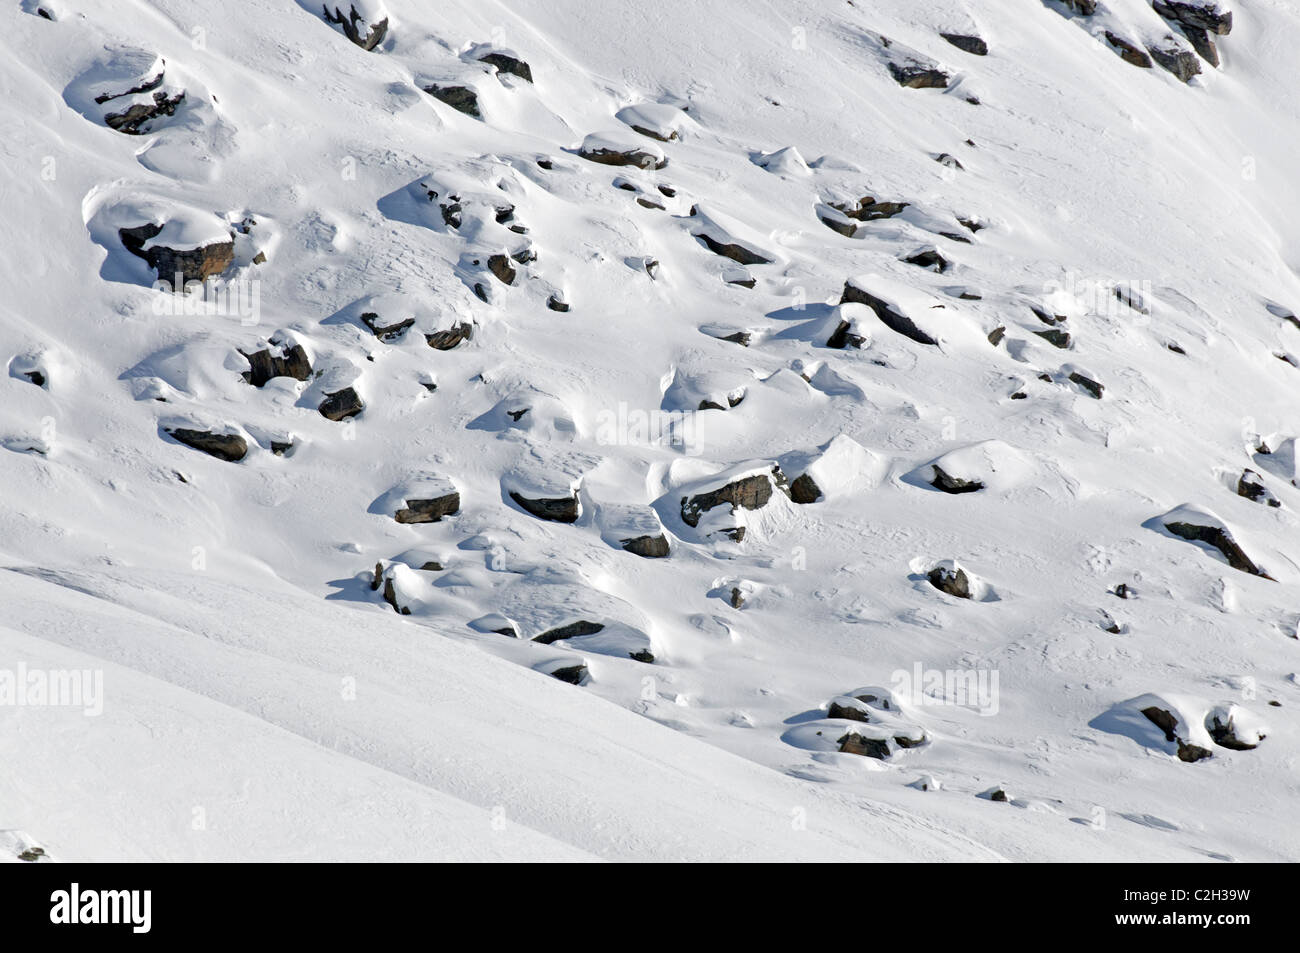 A boulder field covered in snow. Stock Photo